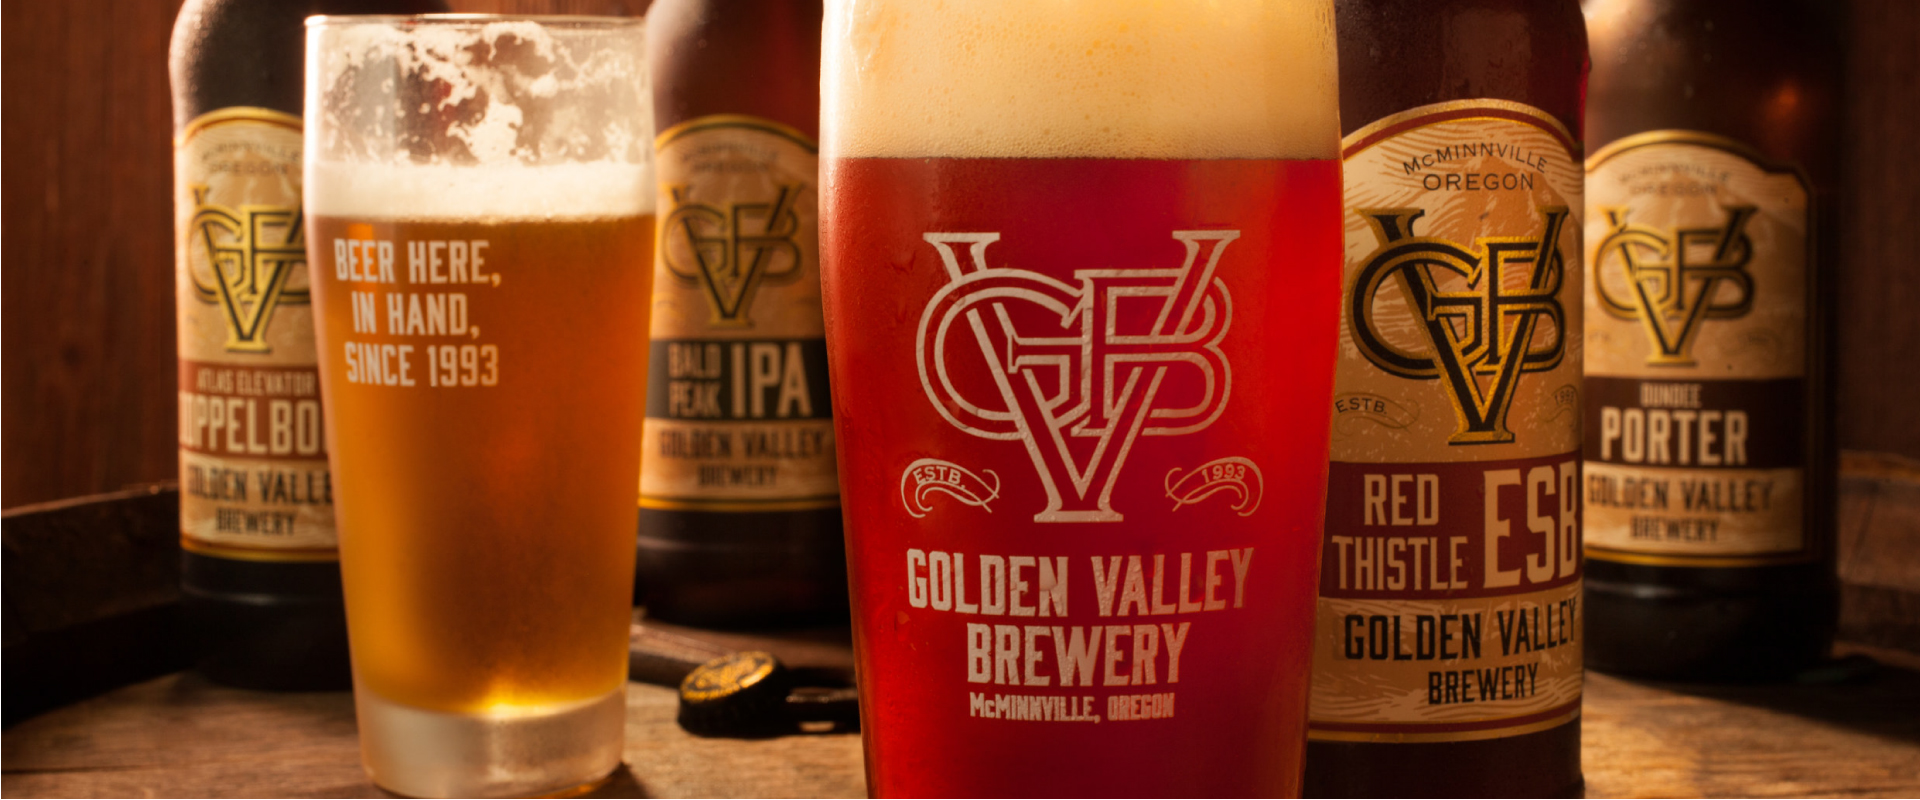 A Portion of Golden Valley Brewery's Lineup of Award-winning Beers